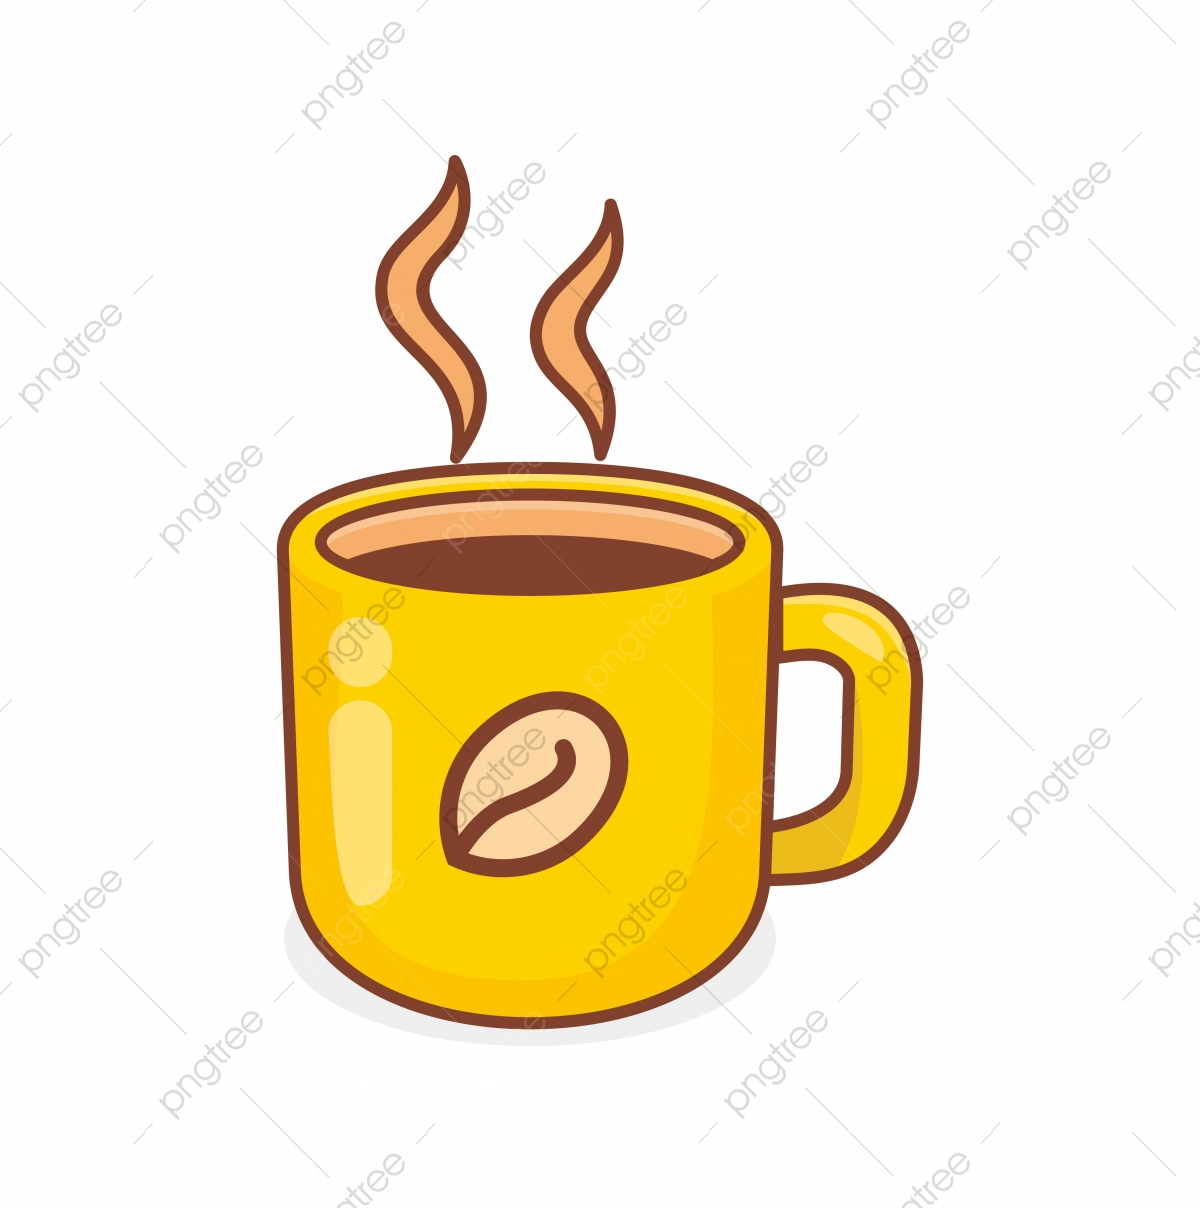 Mug Of Coffee Vector Illustration With Cute Design Isolated On White Background Coffee Clip Art Mug Clipart Mug Coffee Png And Vector With Transparent Background For Free Download